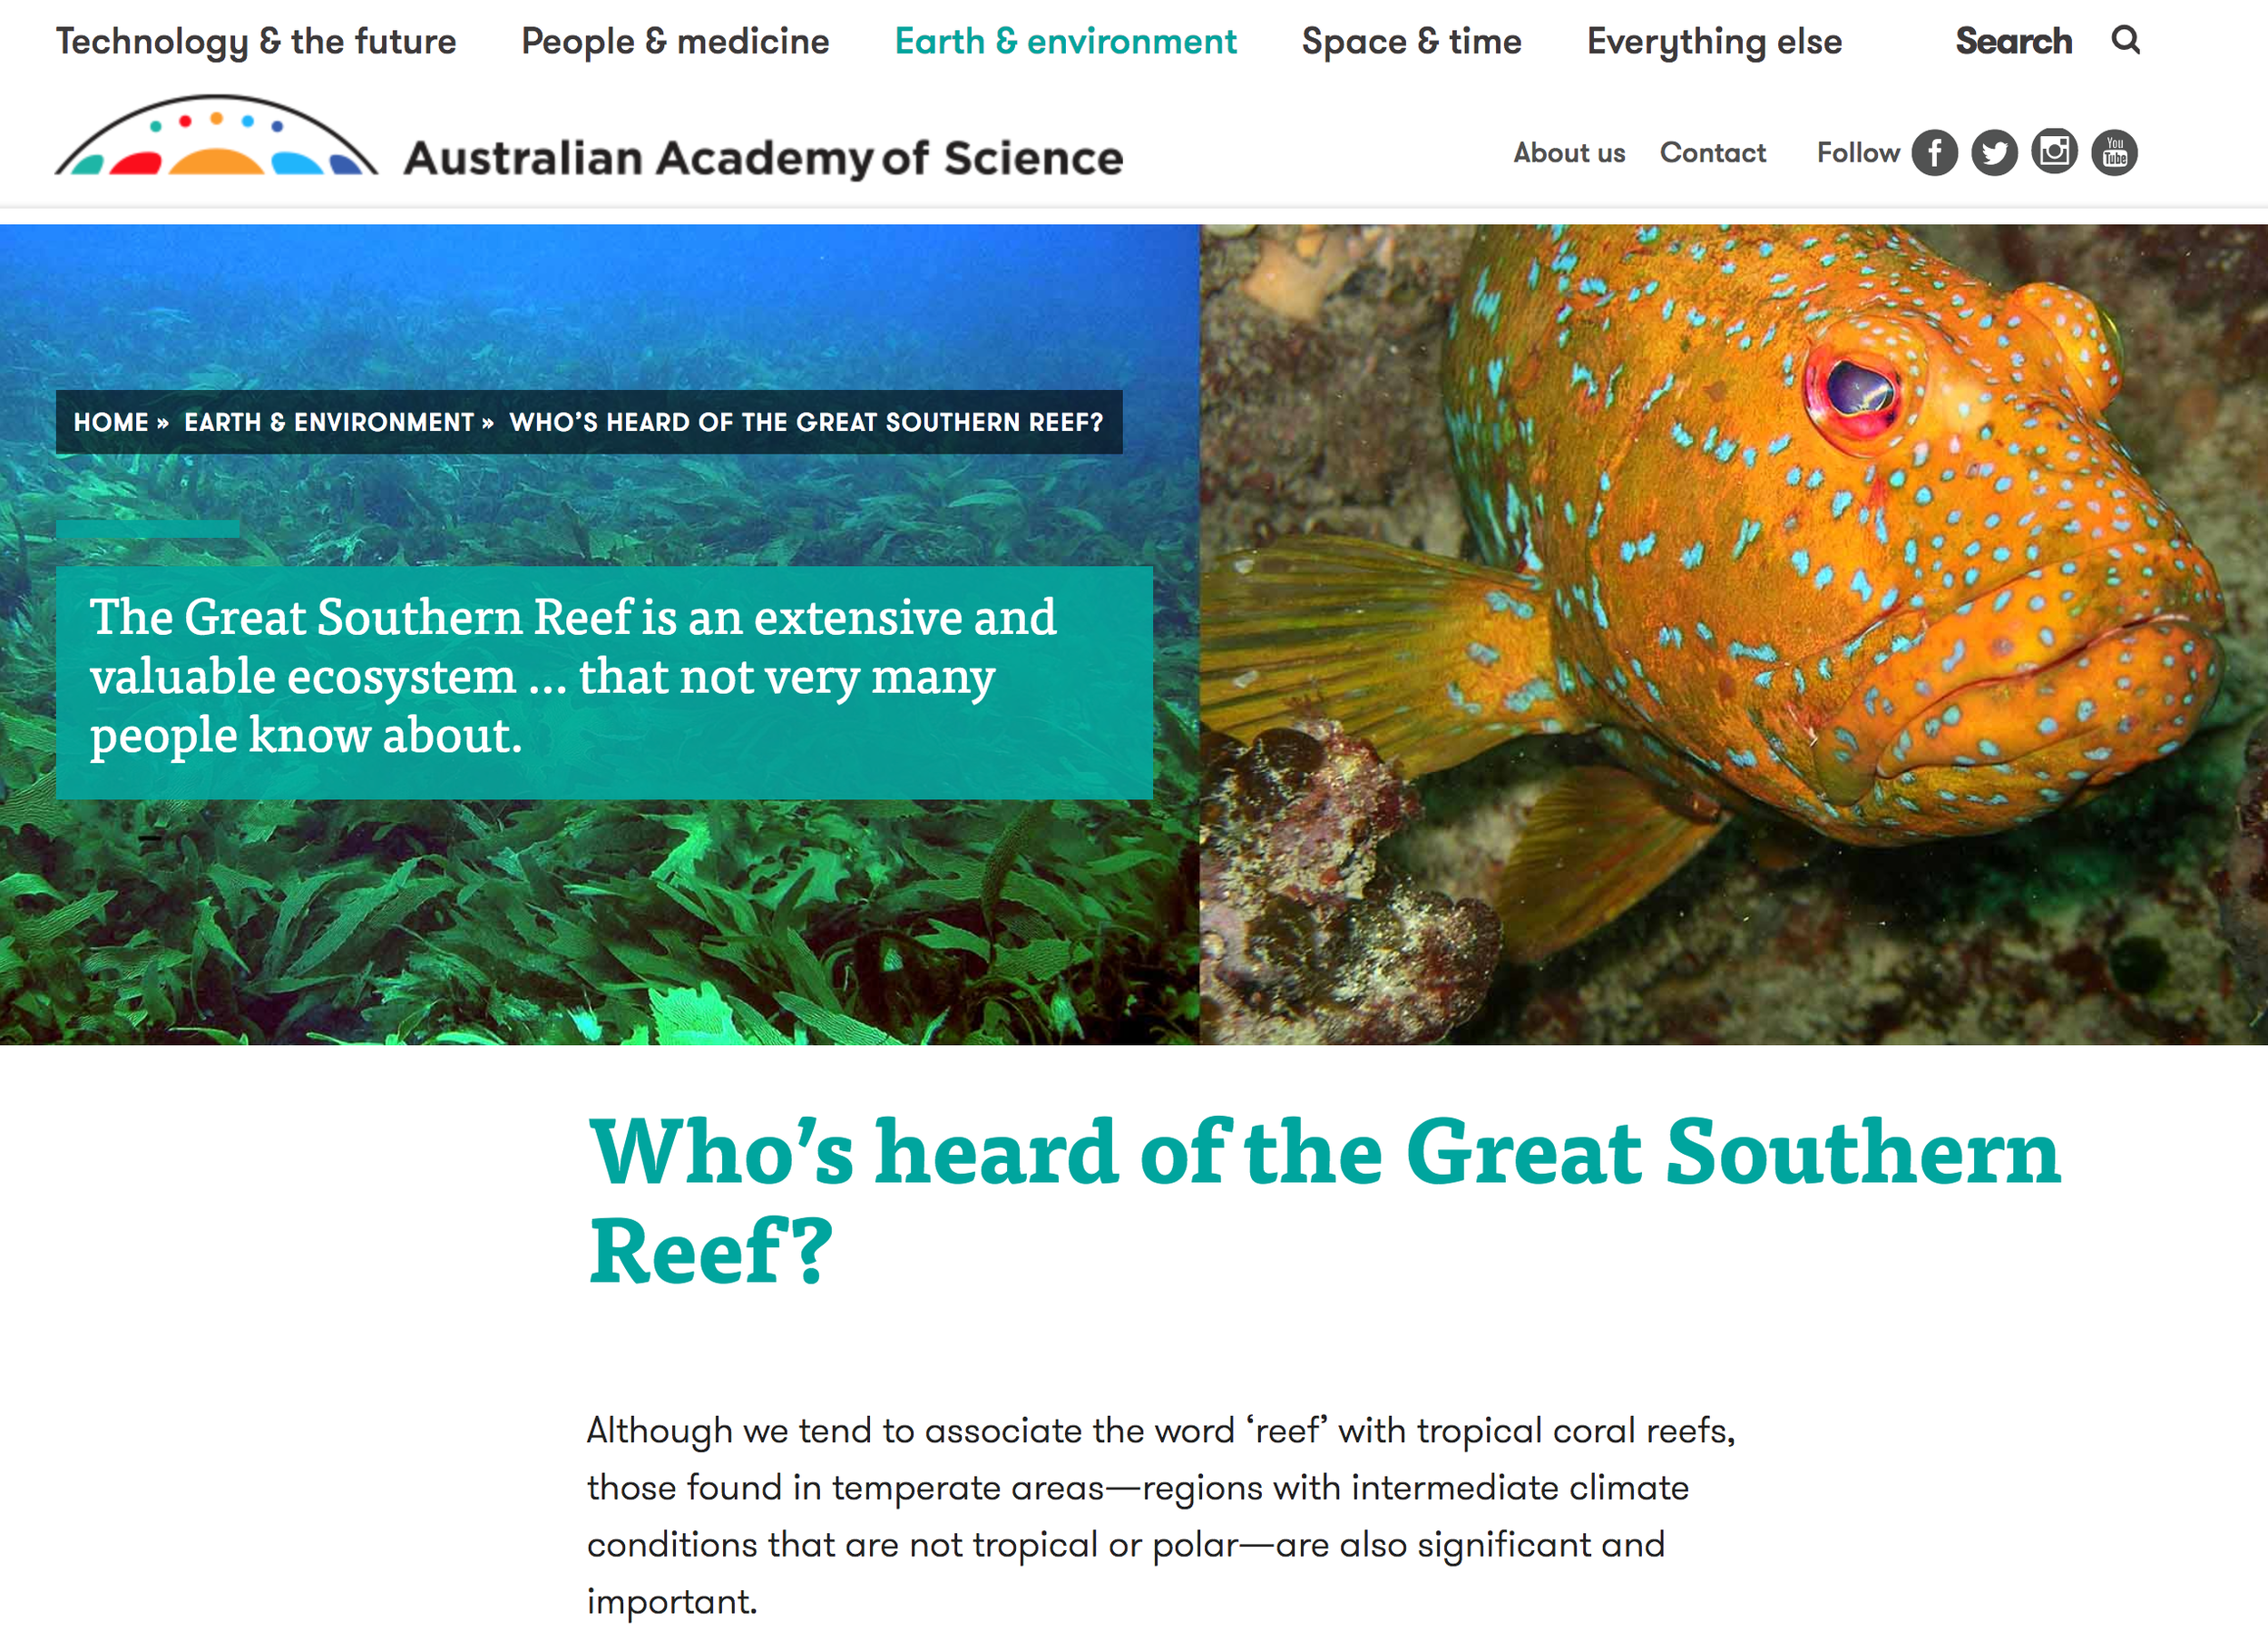 GSR 2 Australian academy of science.png